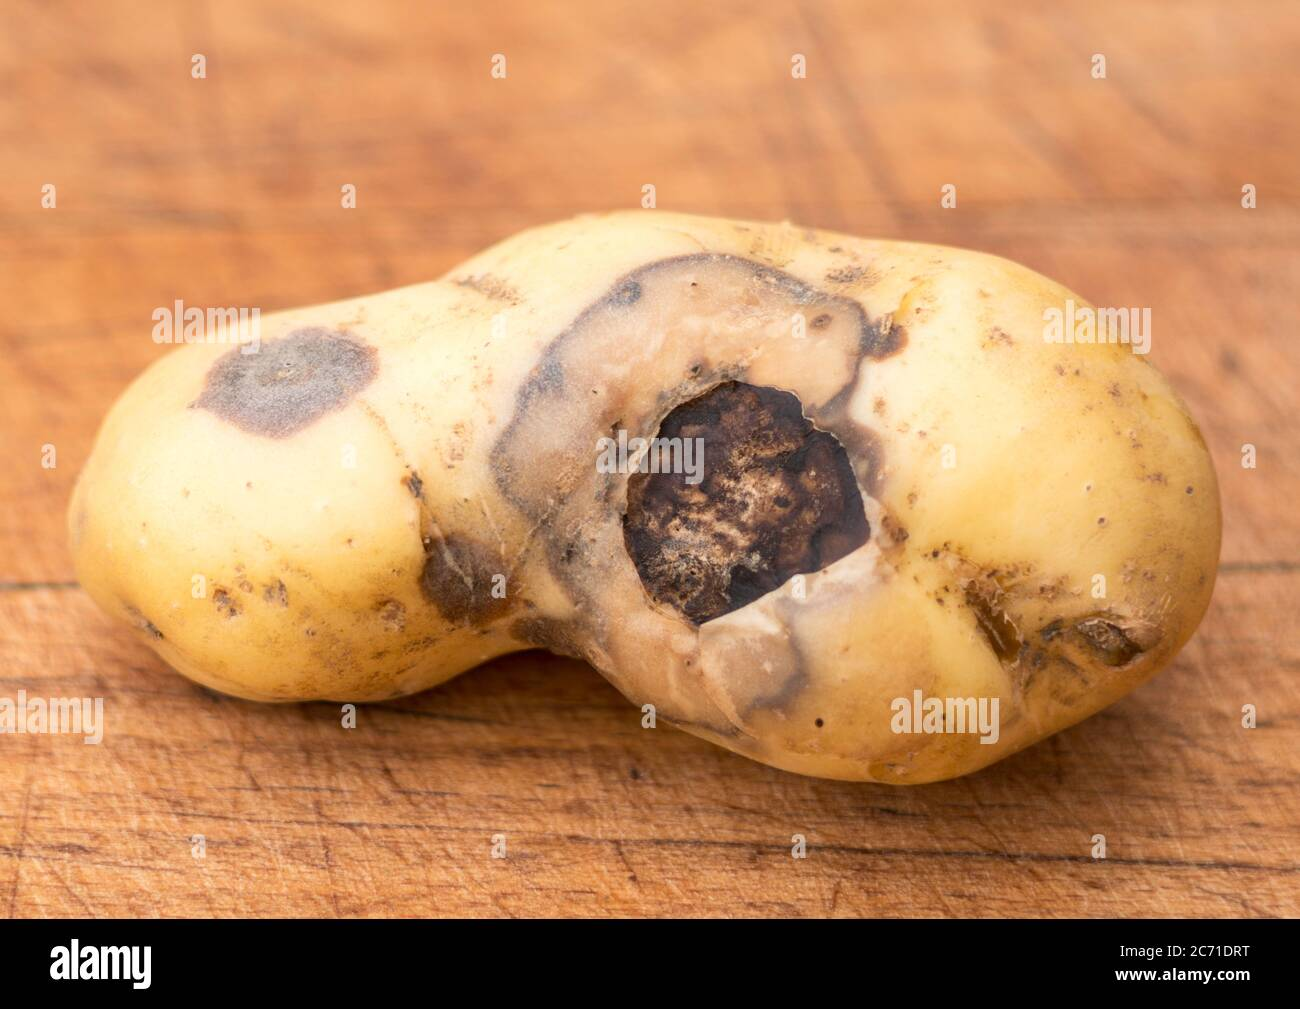 A potato tuber, variety Charlotte,  showing damage due to fungal disease, possibly blight Stock Photo